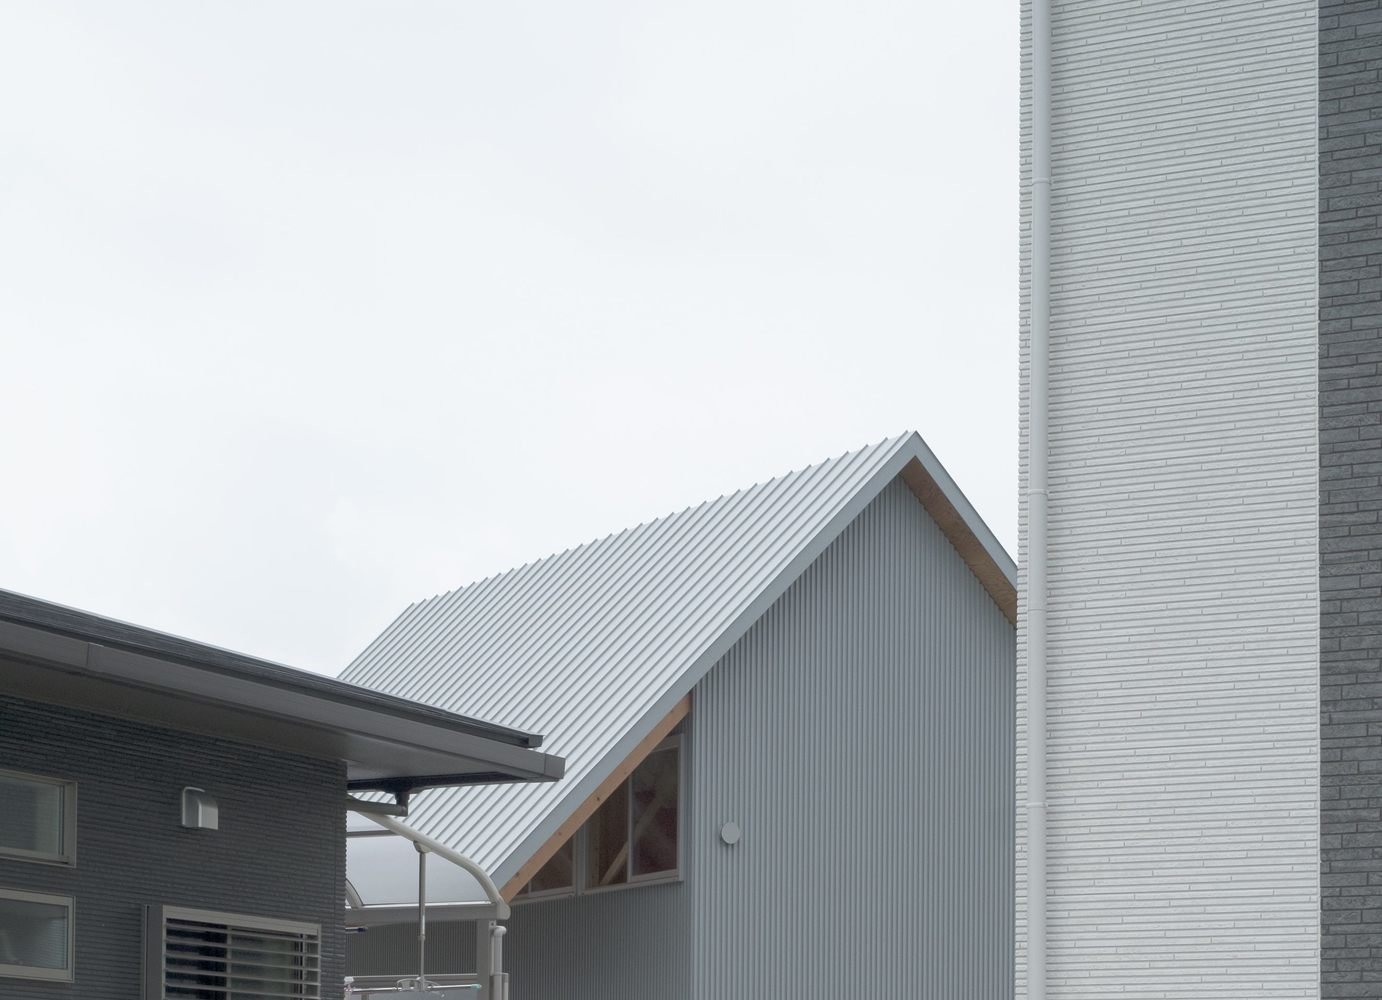 House in Bungotakada is a minimal architecture project located in Oita, Japan, designed by Yabashi Architect & Associates. The owner wanted a spacious and bright space that would also accommodate guests. In order to lower costs, the architects chose to create split-level segmented programs. The split levels would divide the space without the use of partitions or walls. In doing so, each space is opened up to another, allowing light and wind to flow throughout the entire home.  Architecture